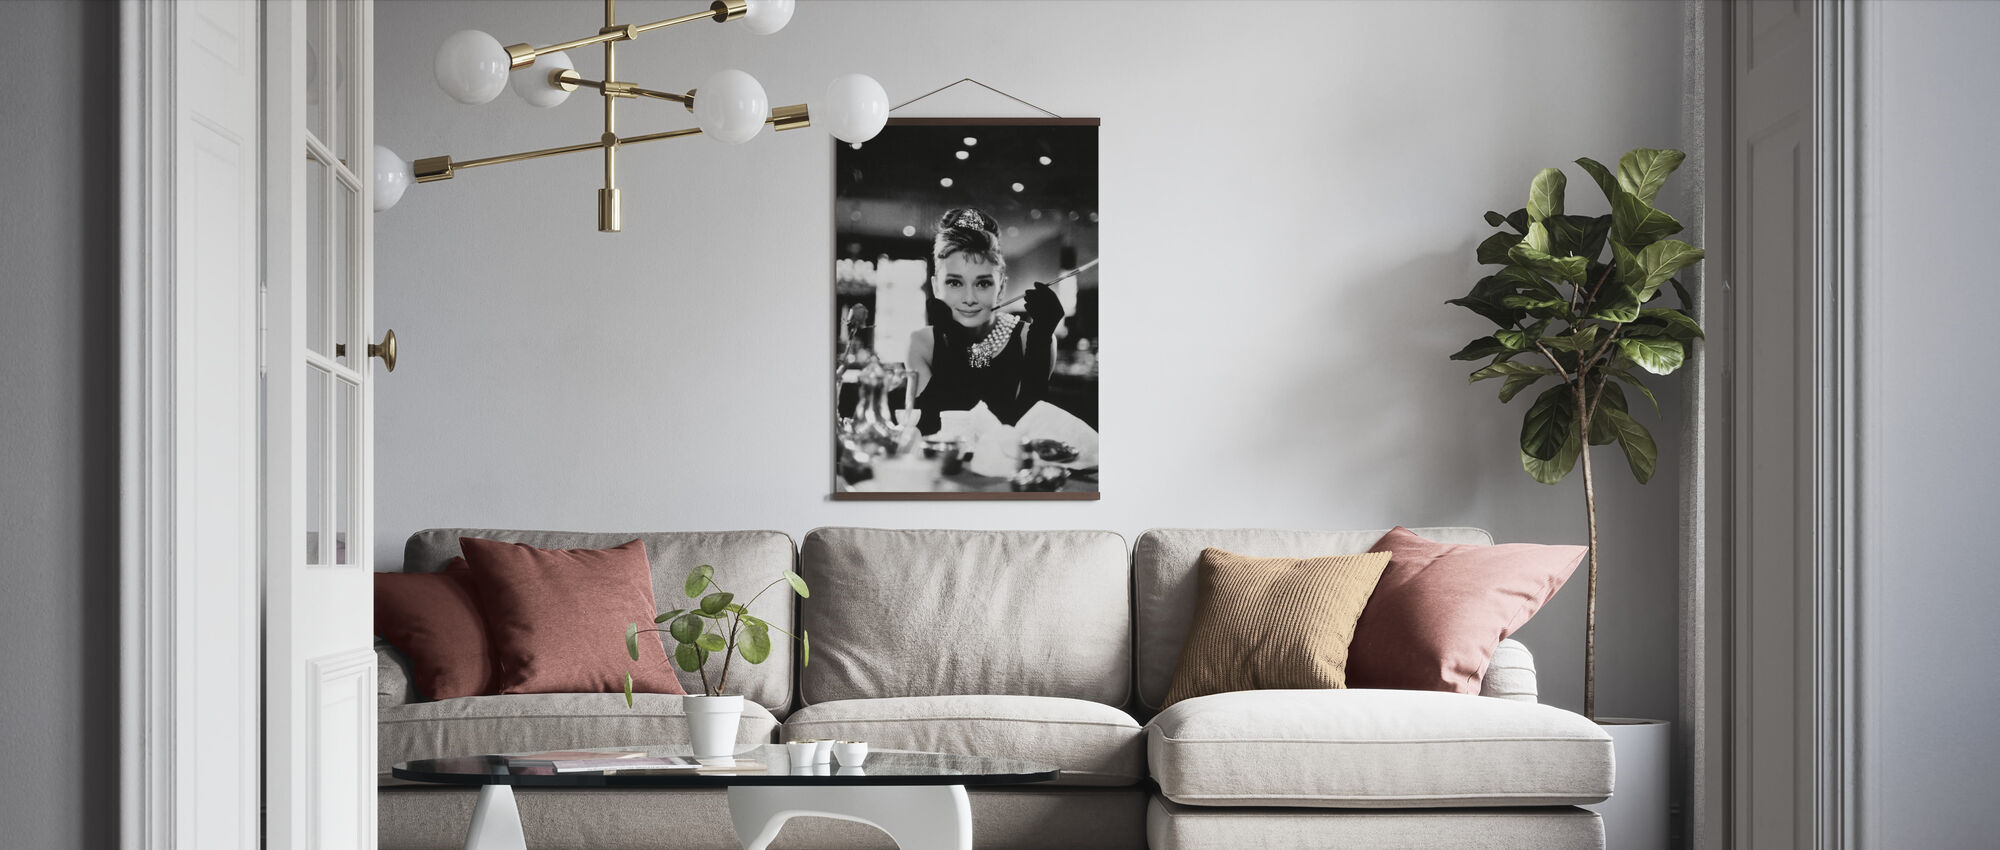 Audrey Hepburn in Breakfast at Tiffanys - Poster - Living Room